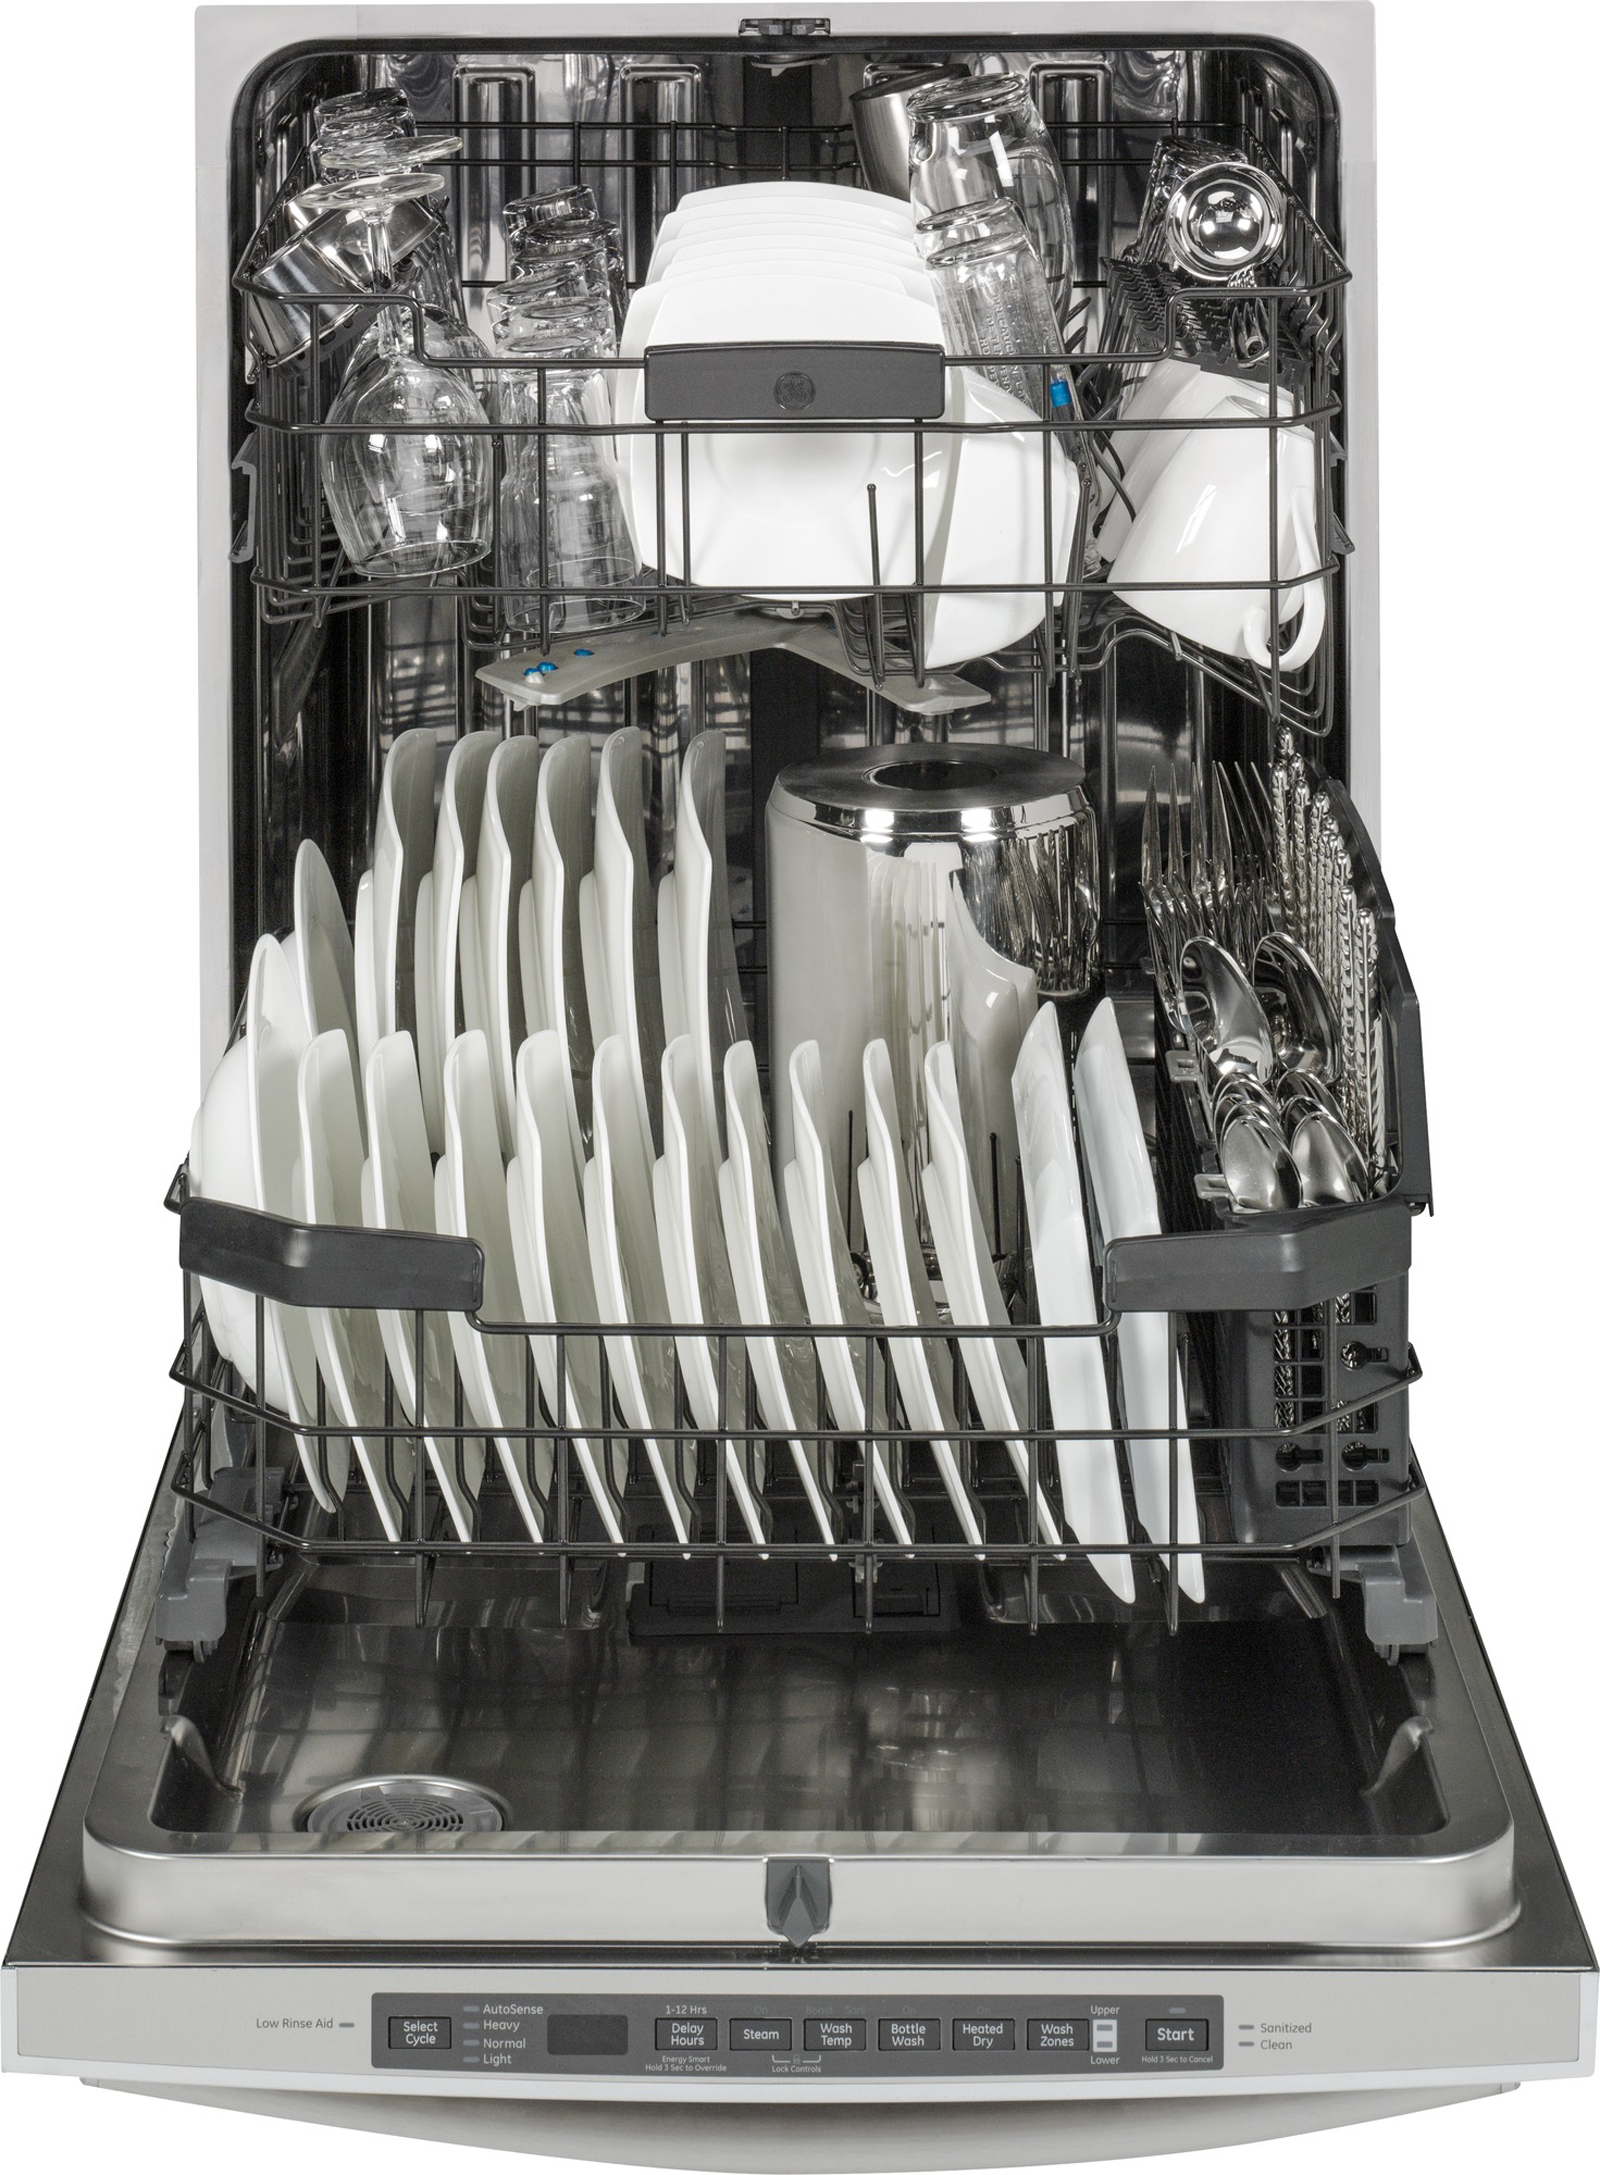 "GE Appliances 24"" Built-in Dishwasher w/ Stainless Steel Interior - Stainless Steel"